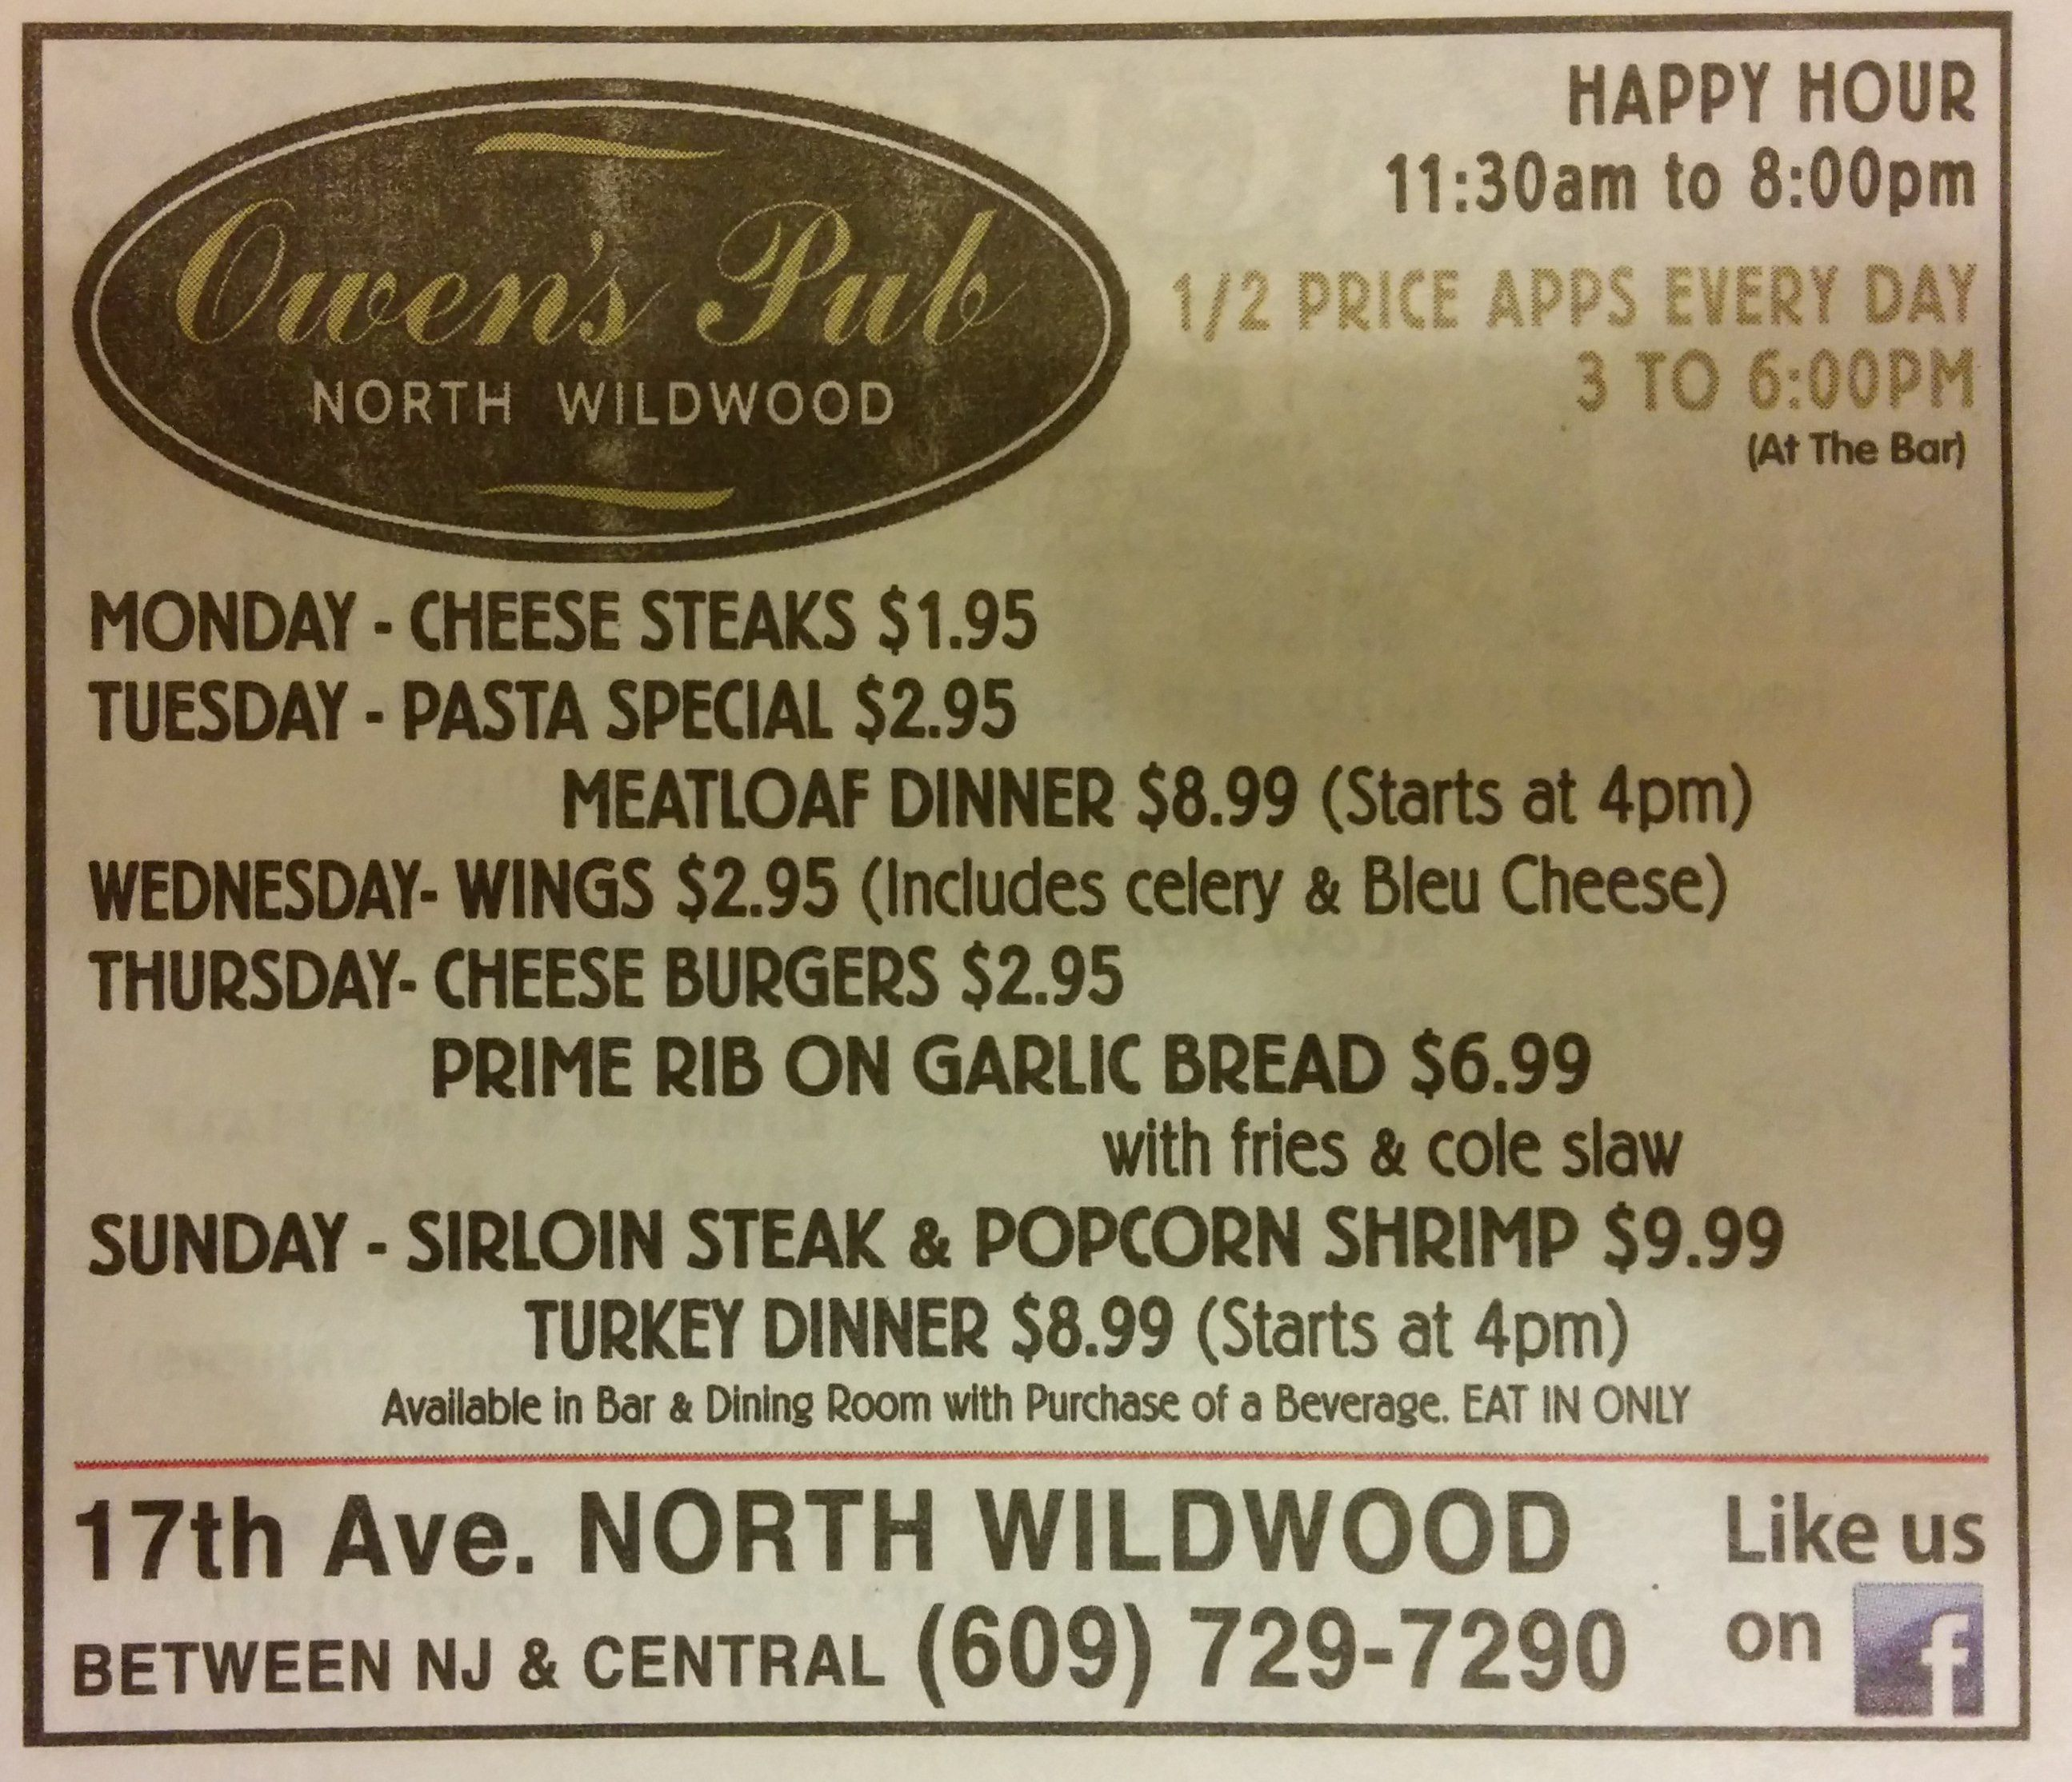 Owen S Pub Specials Good Food Good Prices Newspaper